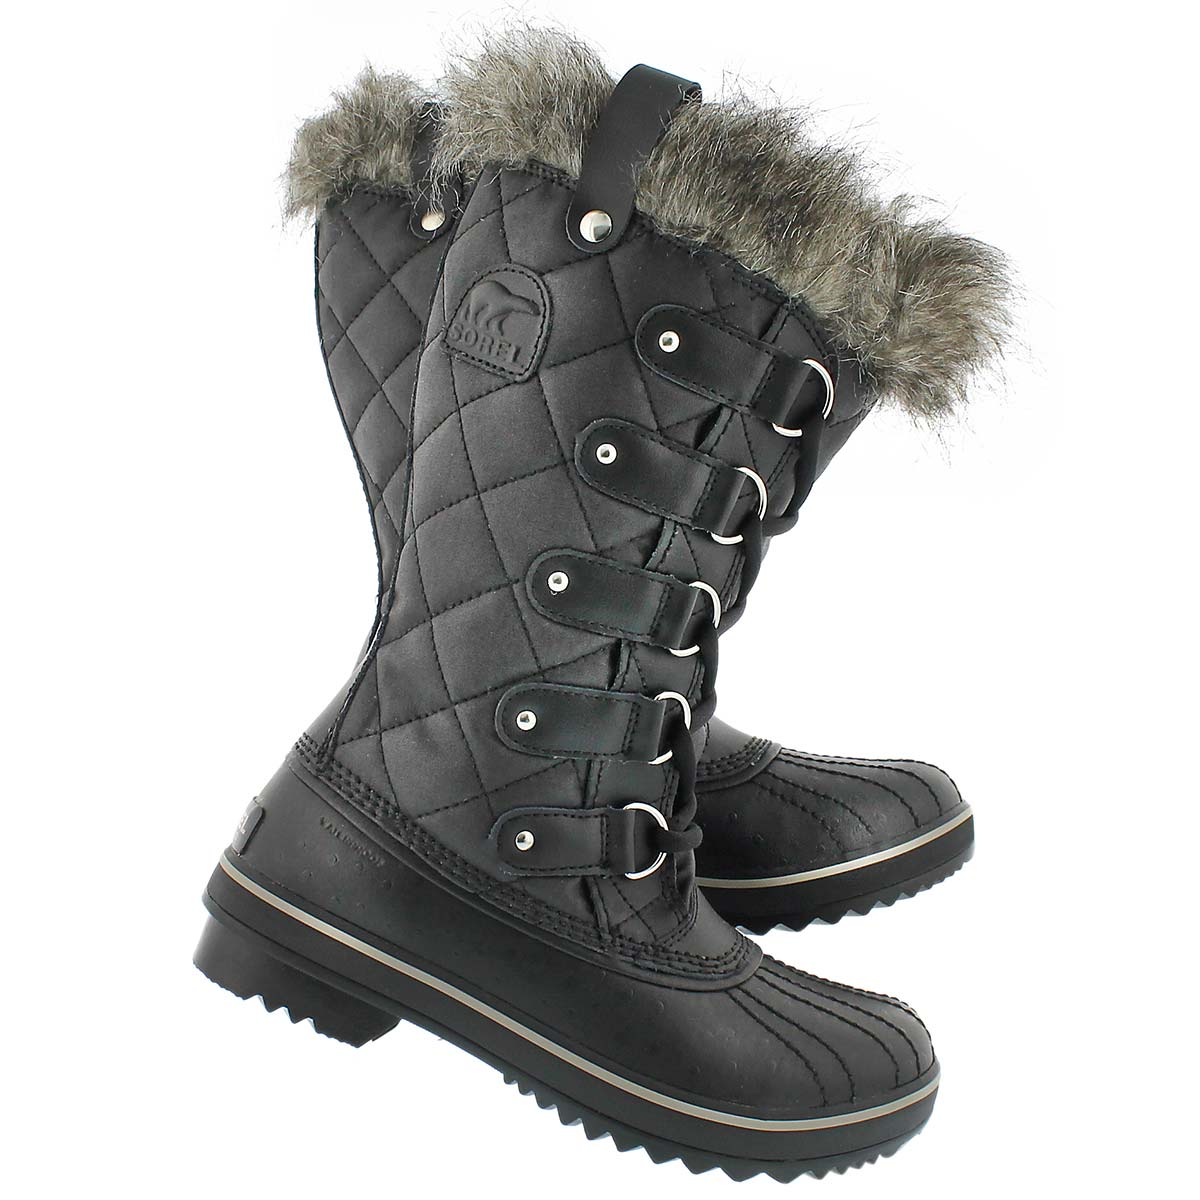 Lds Tofino Cate black winter boot